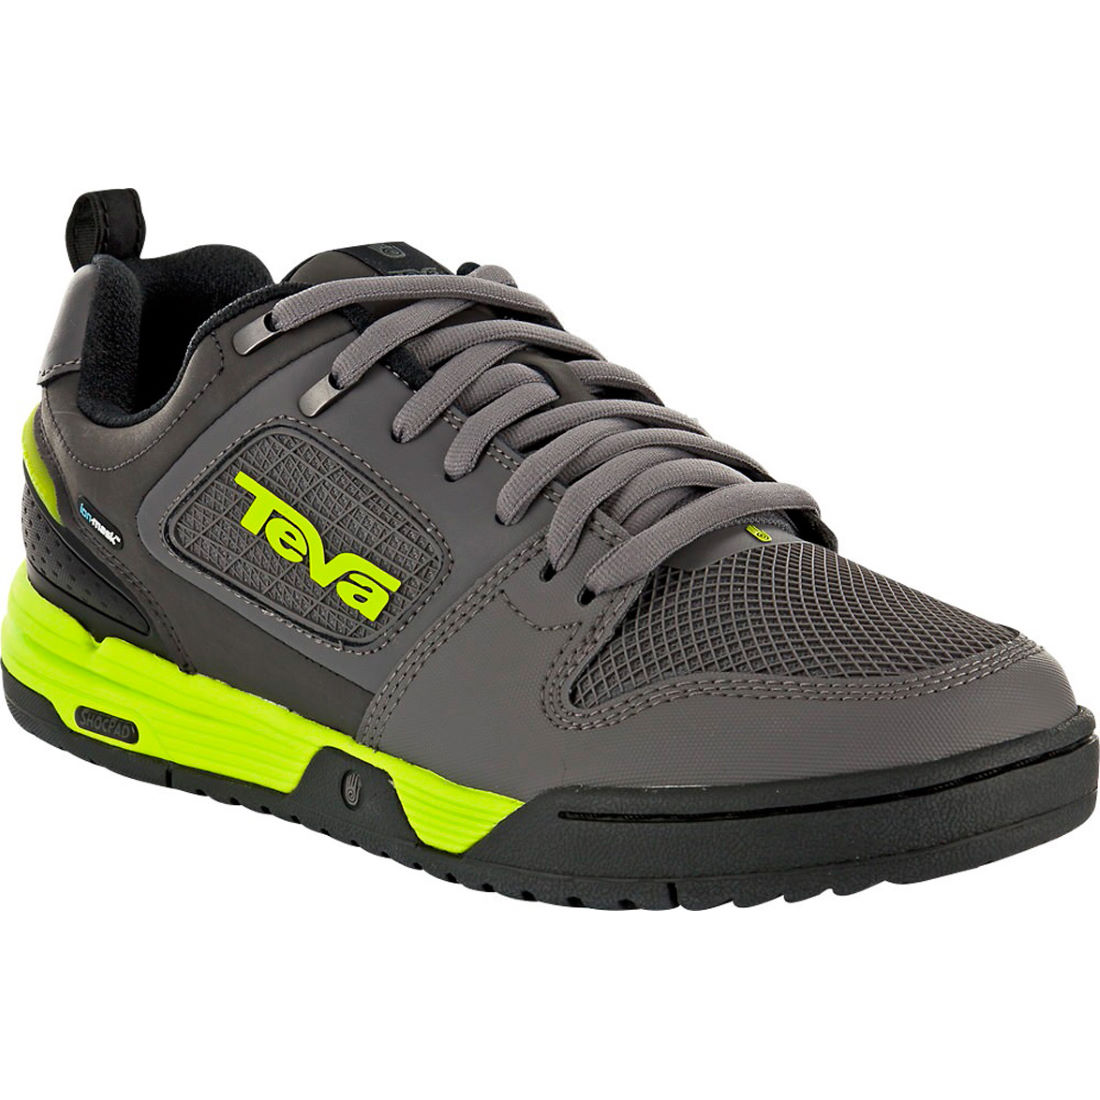 Teva Shoes Uk